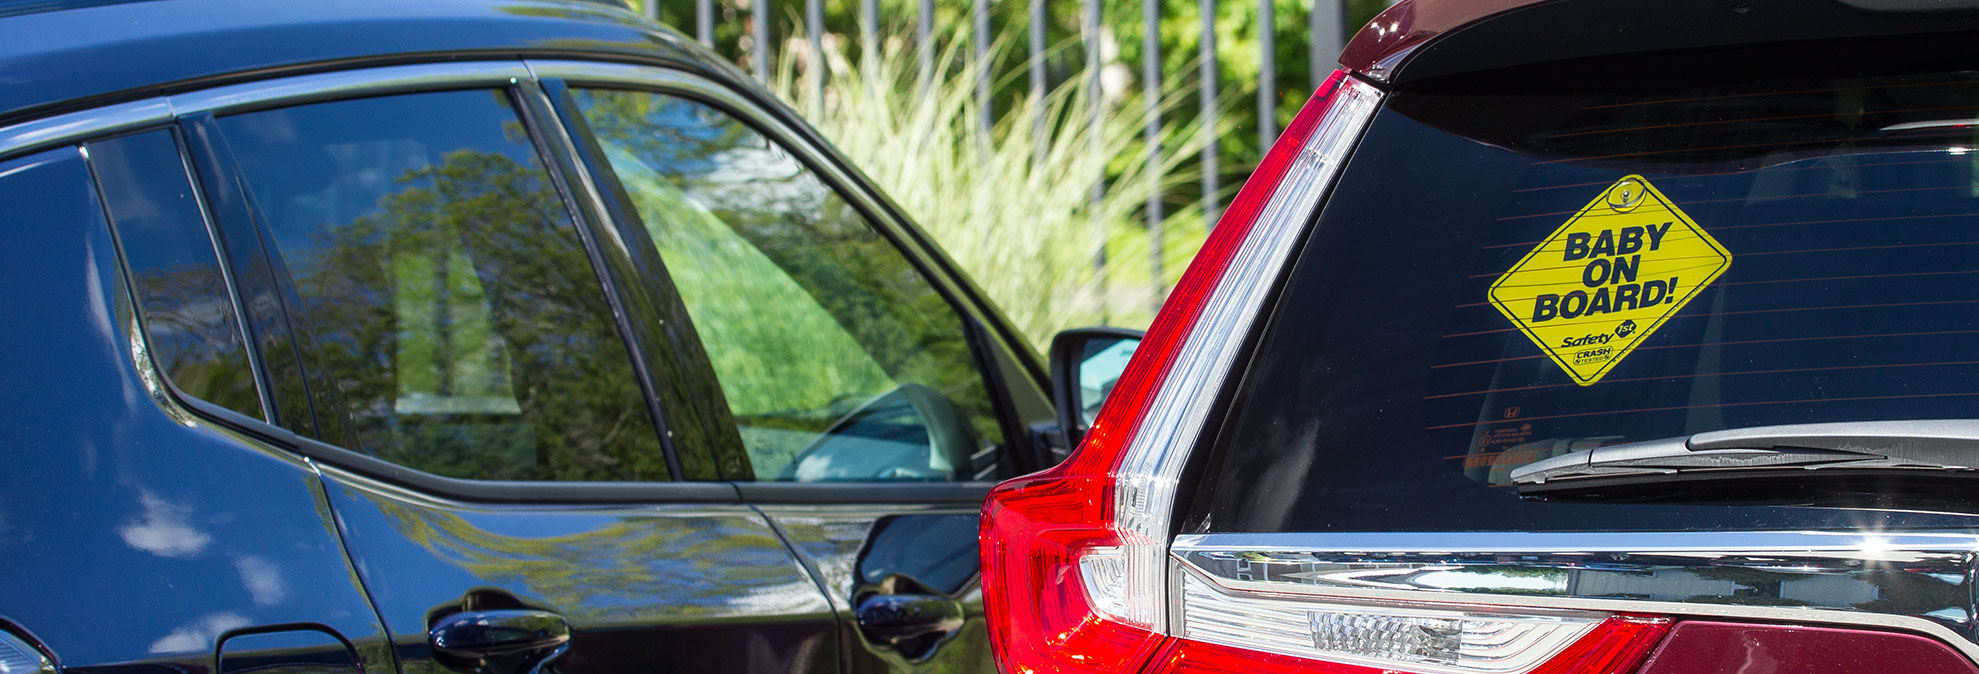 Hot Car Fatalities Are Year-Round Threat to Children and Pets